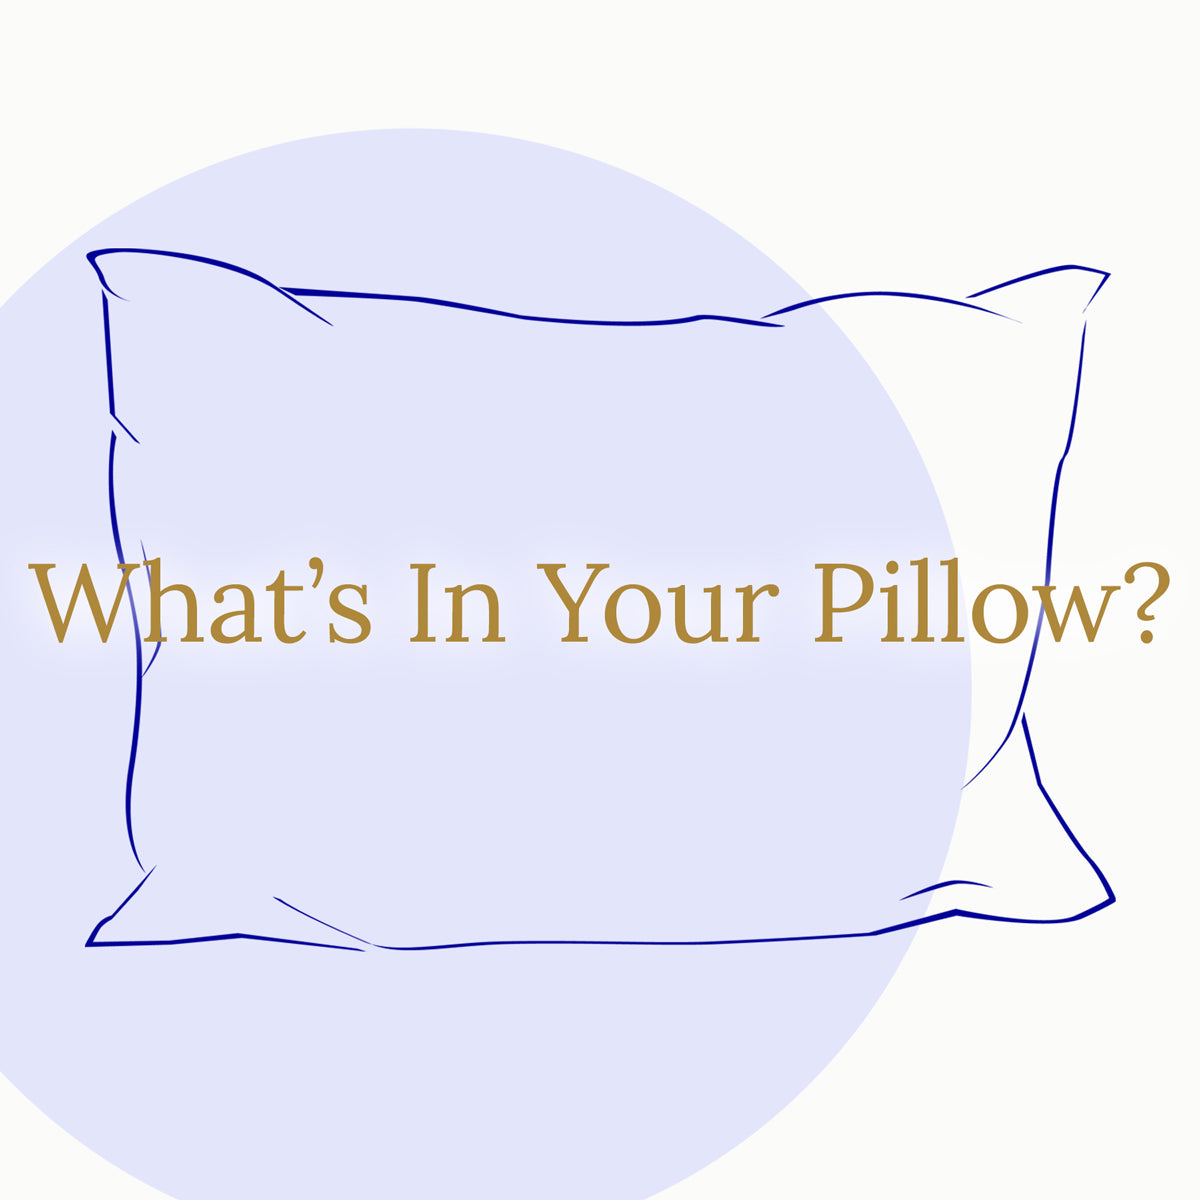 What's In Your Pillow?